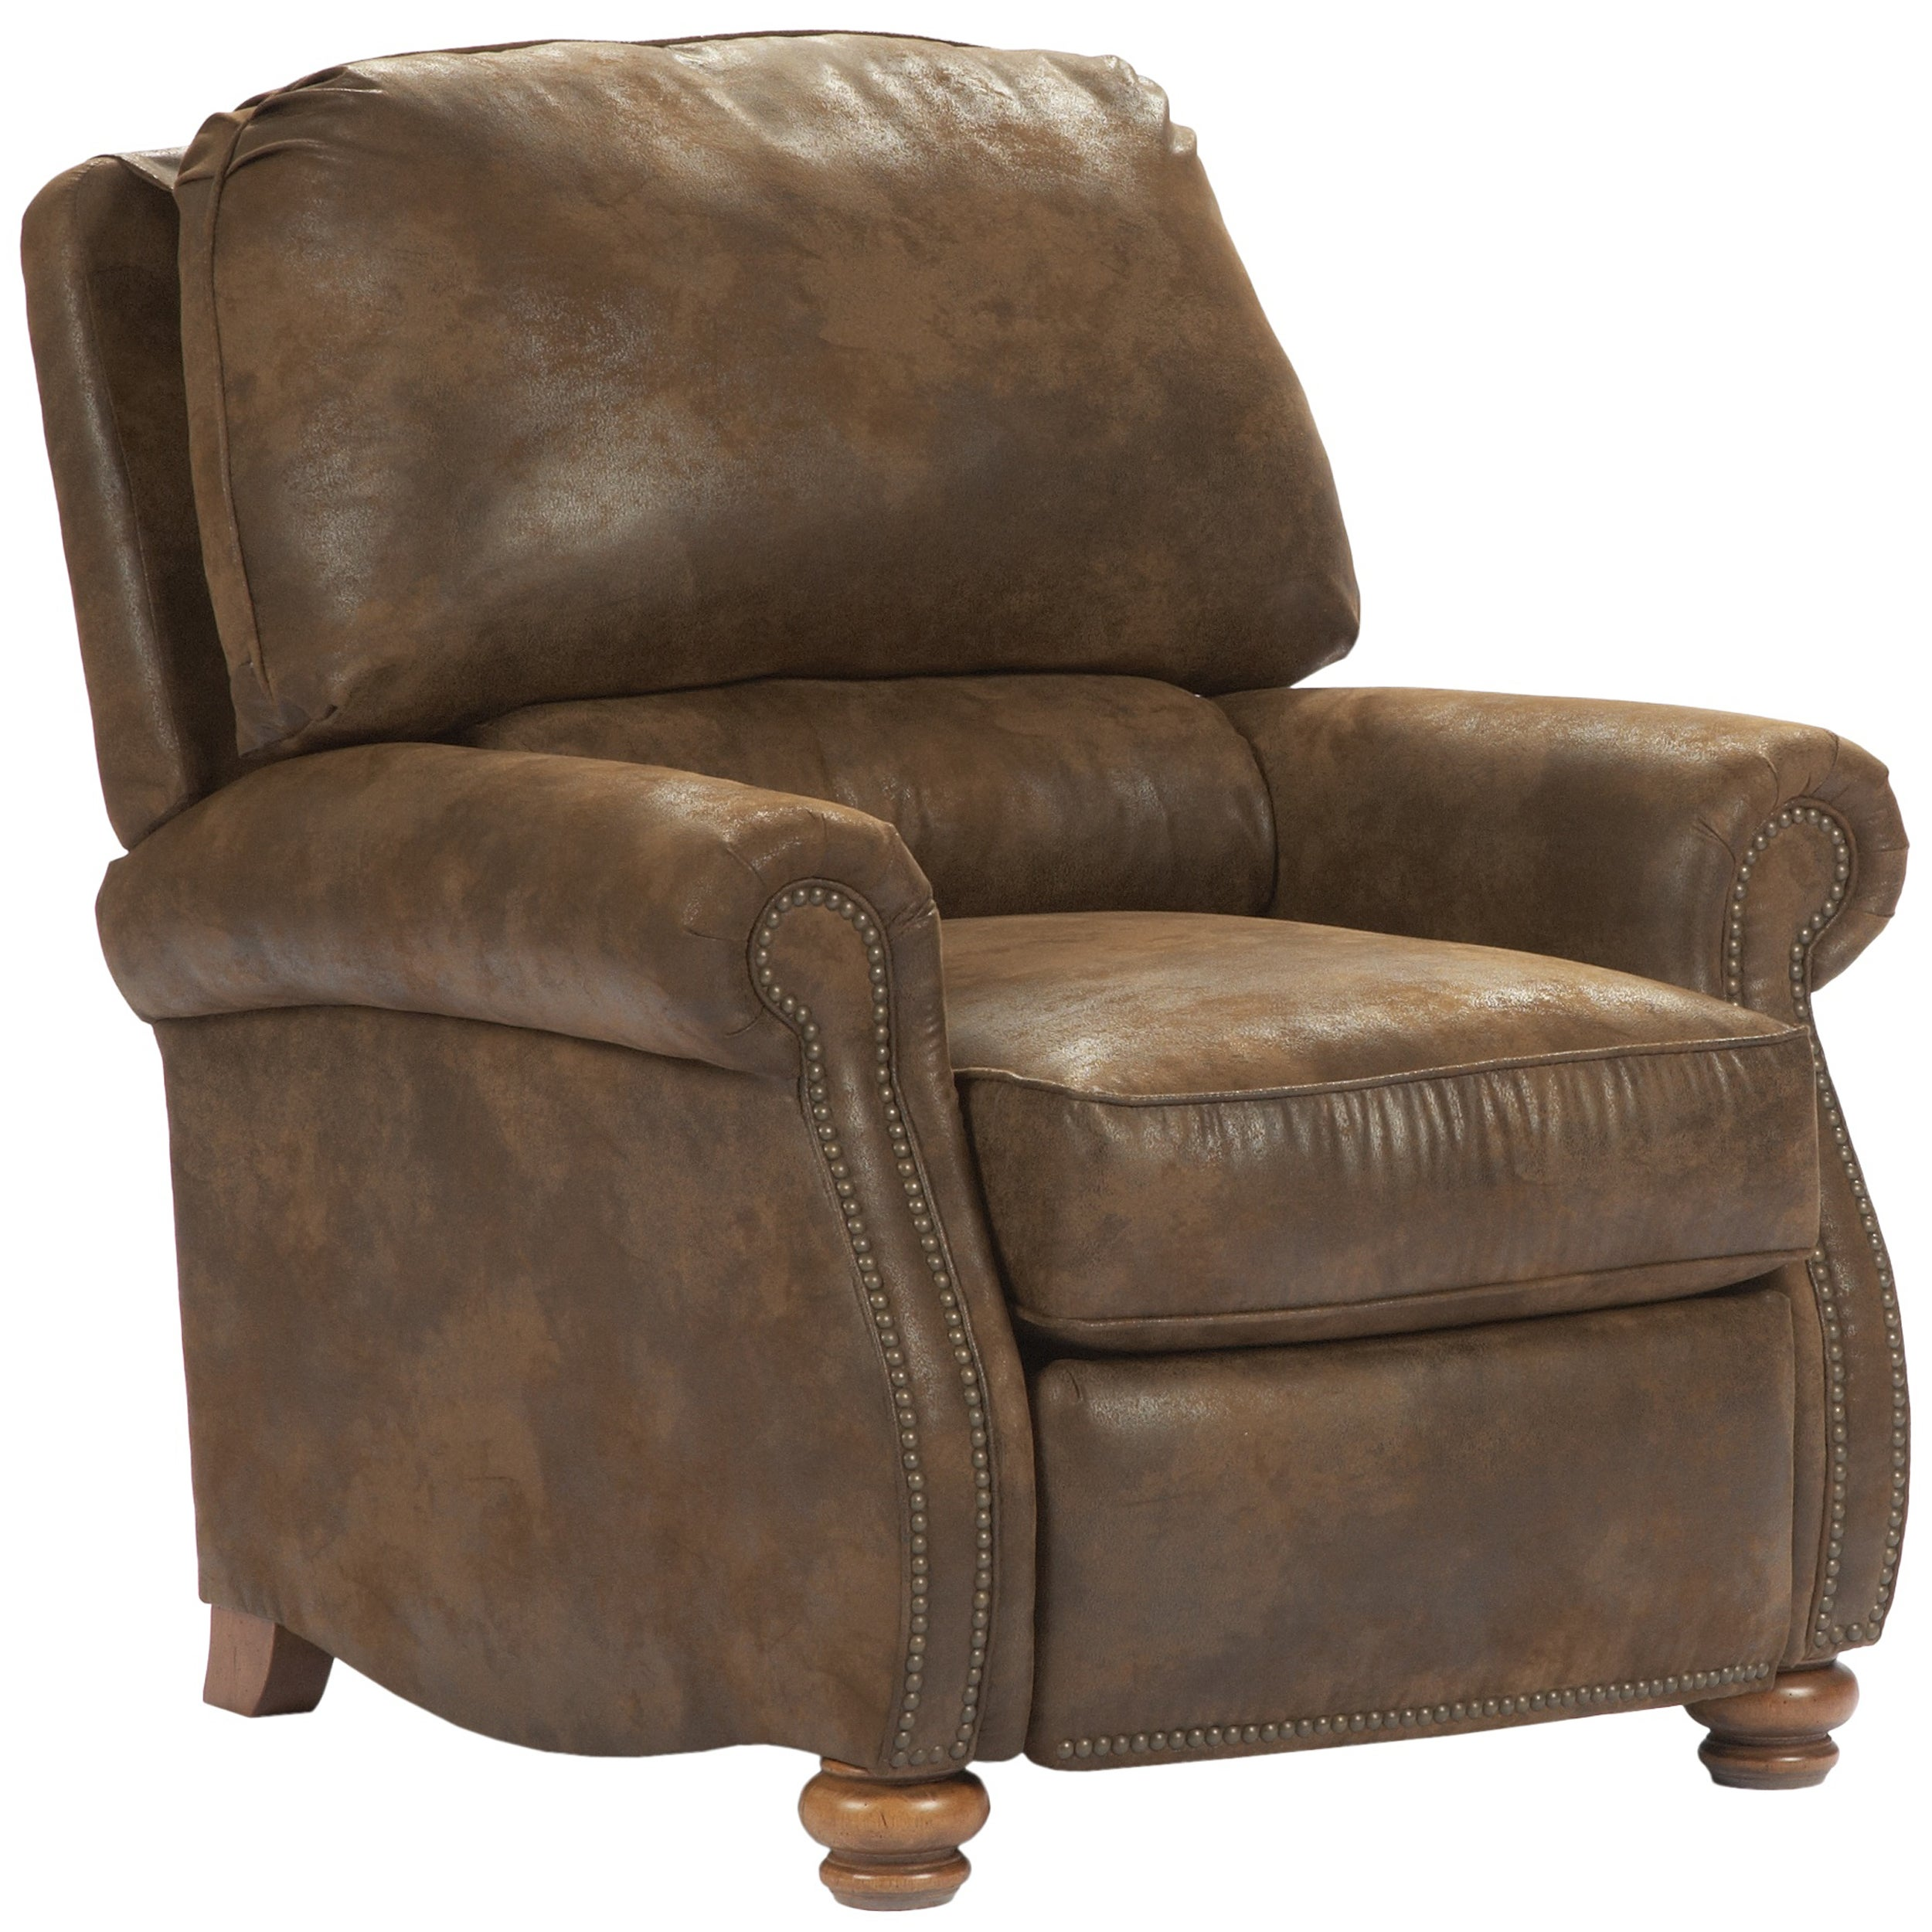 Broyhill Marie Brown Push Back Loose Seat Cushion Recliner